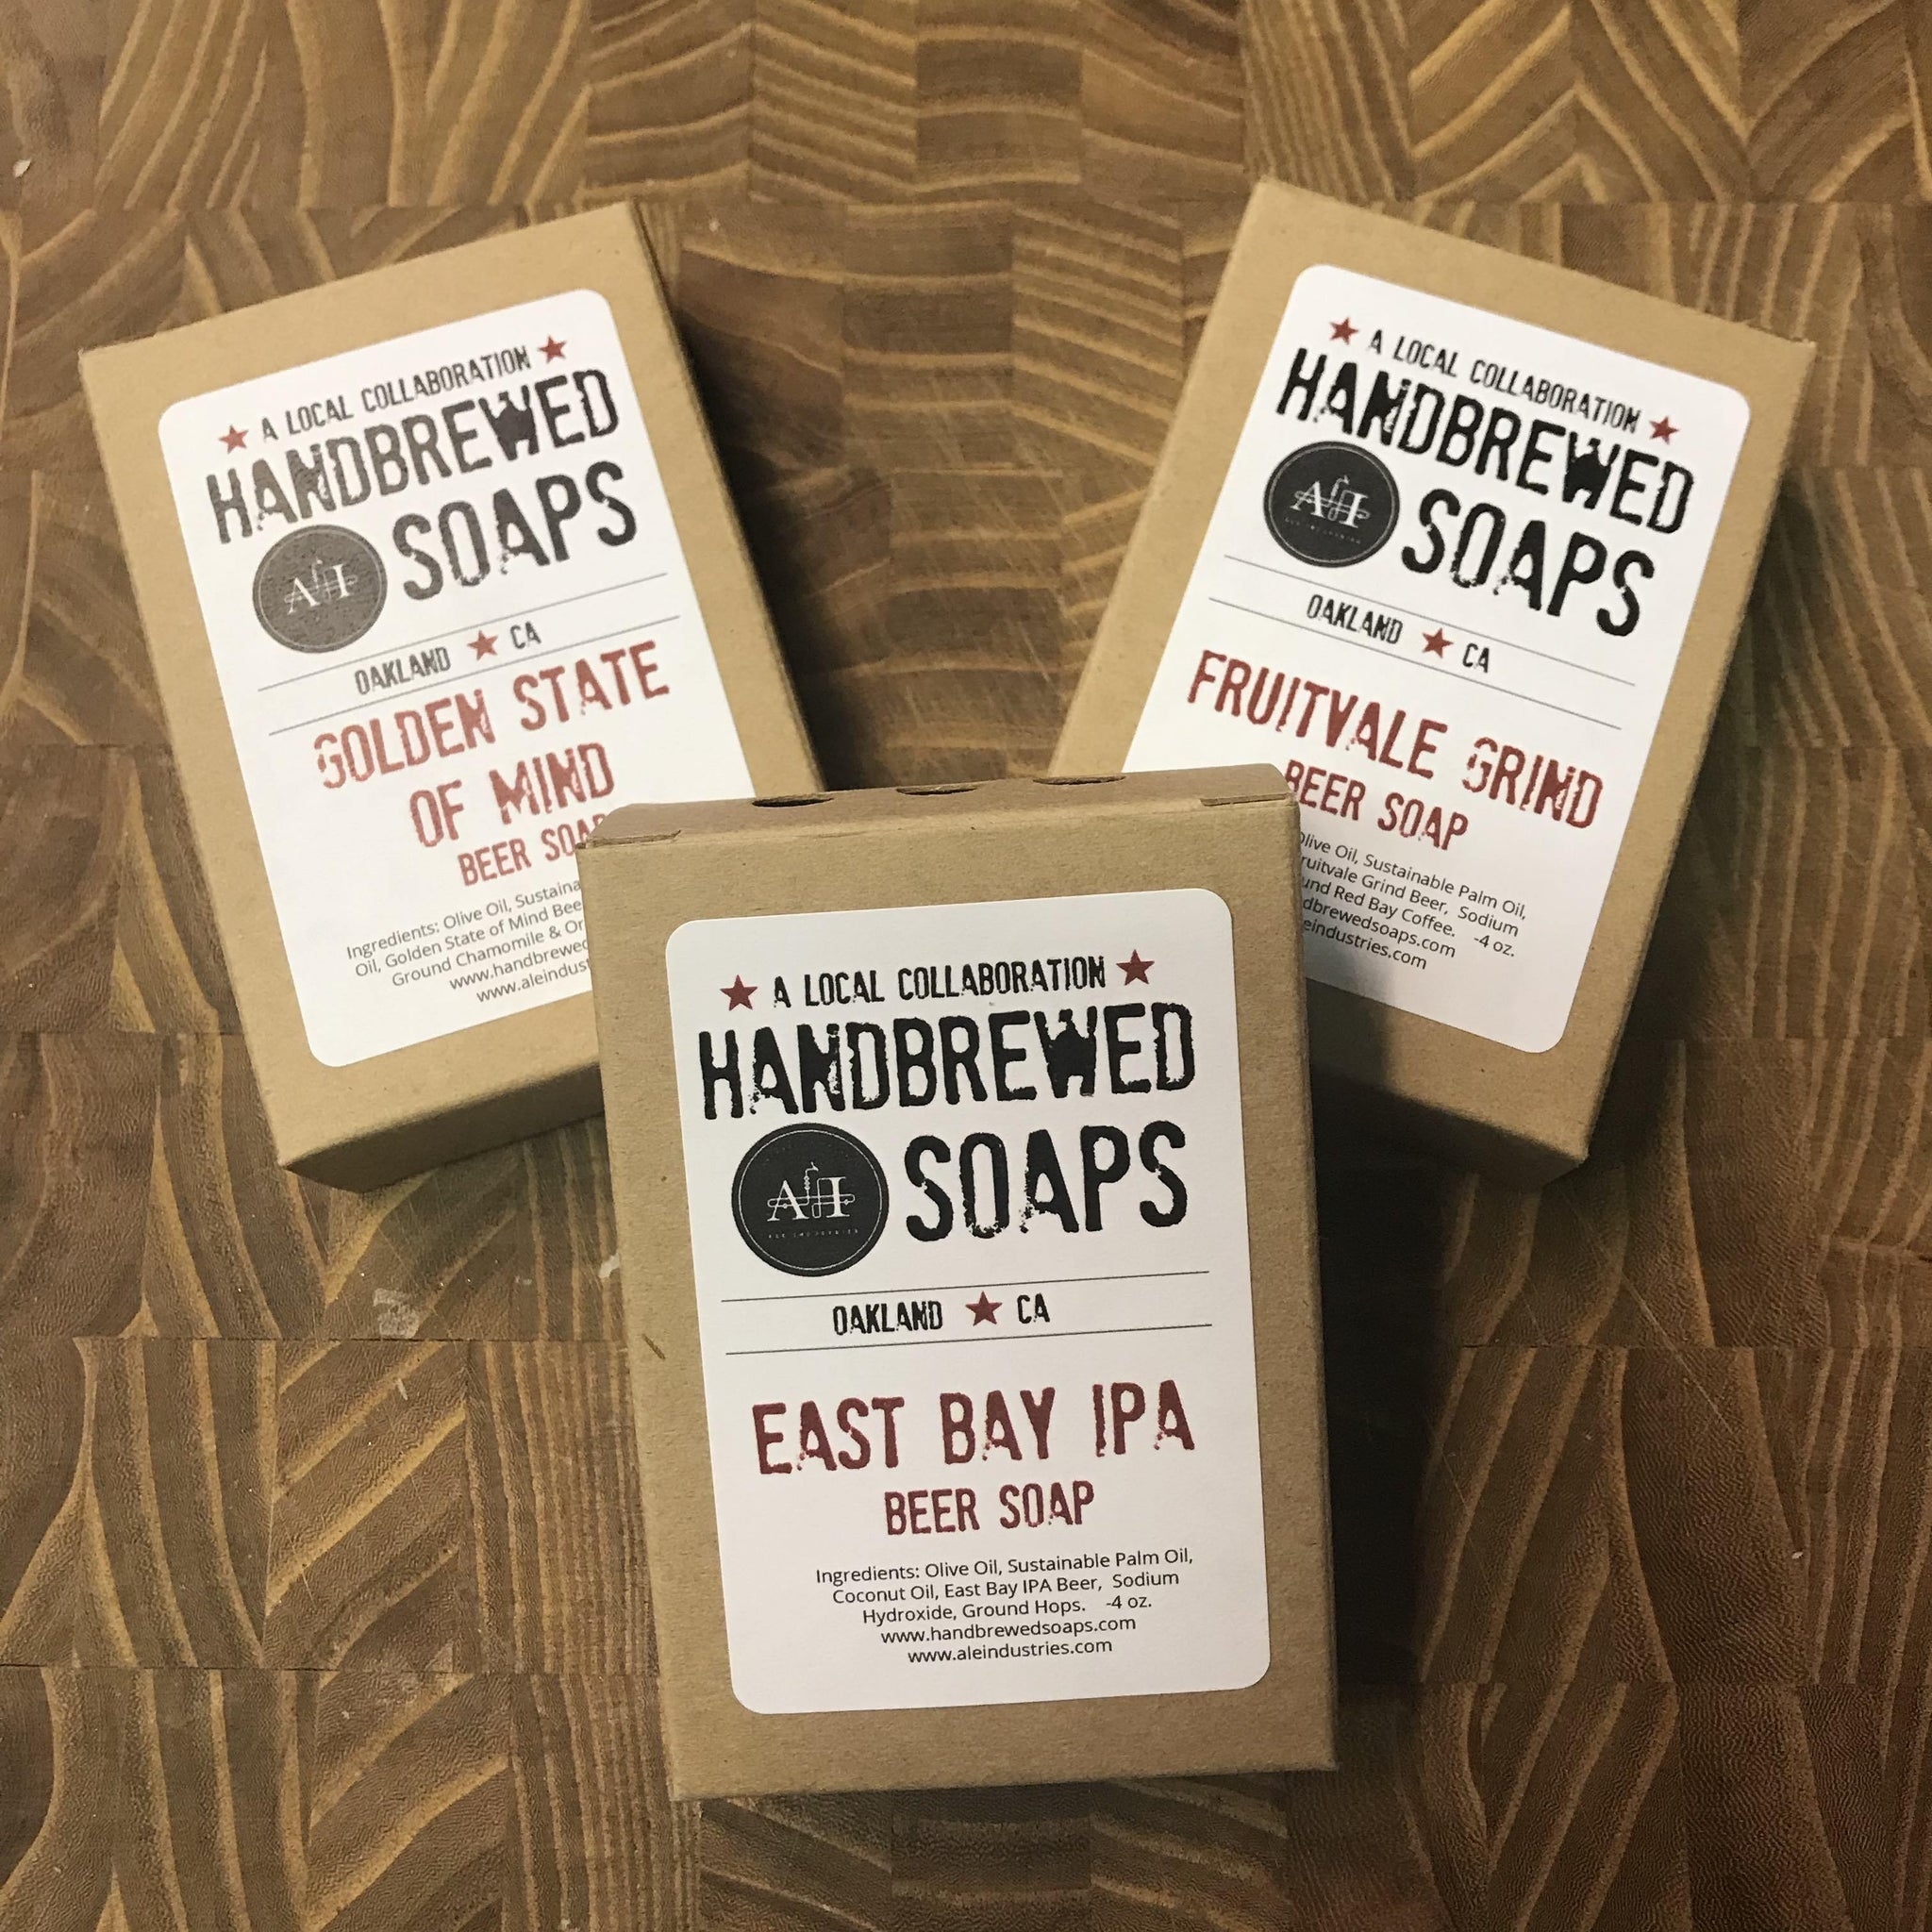 Ale Industries Beer Soap Collection: Fruitvale Gind, East Bay IPA, Golden State of Mind